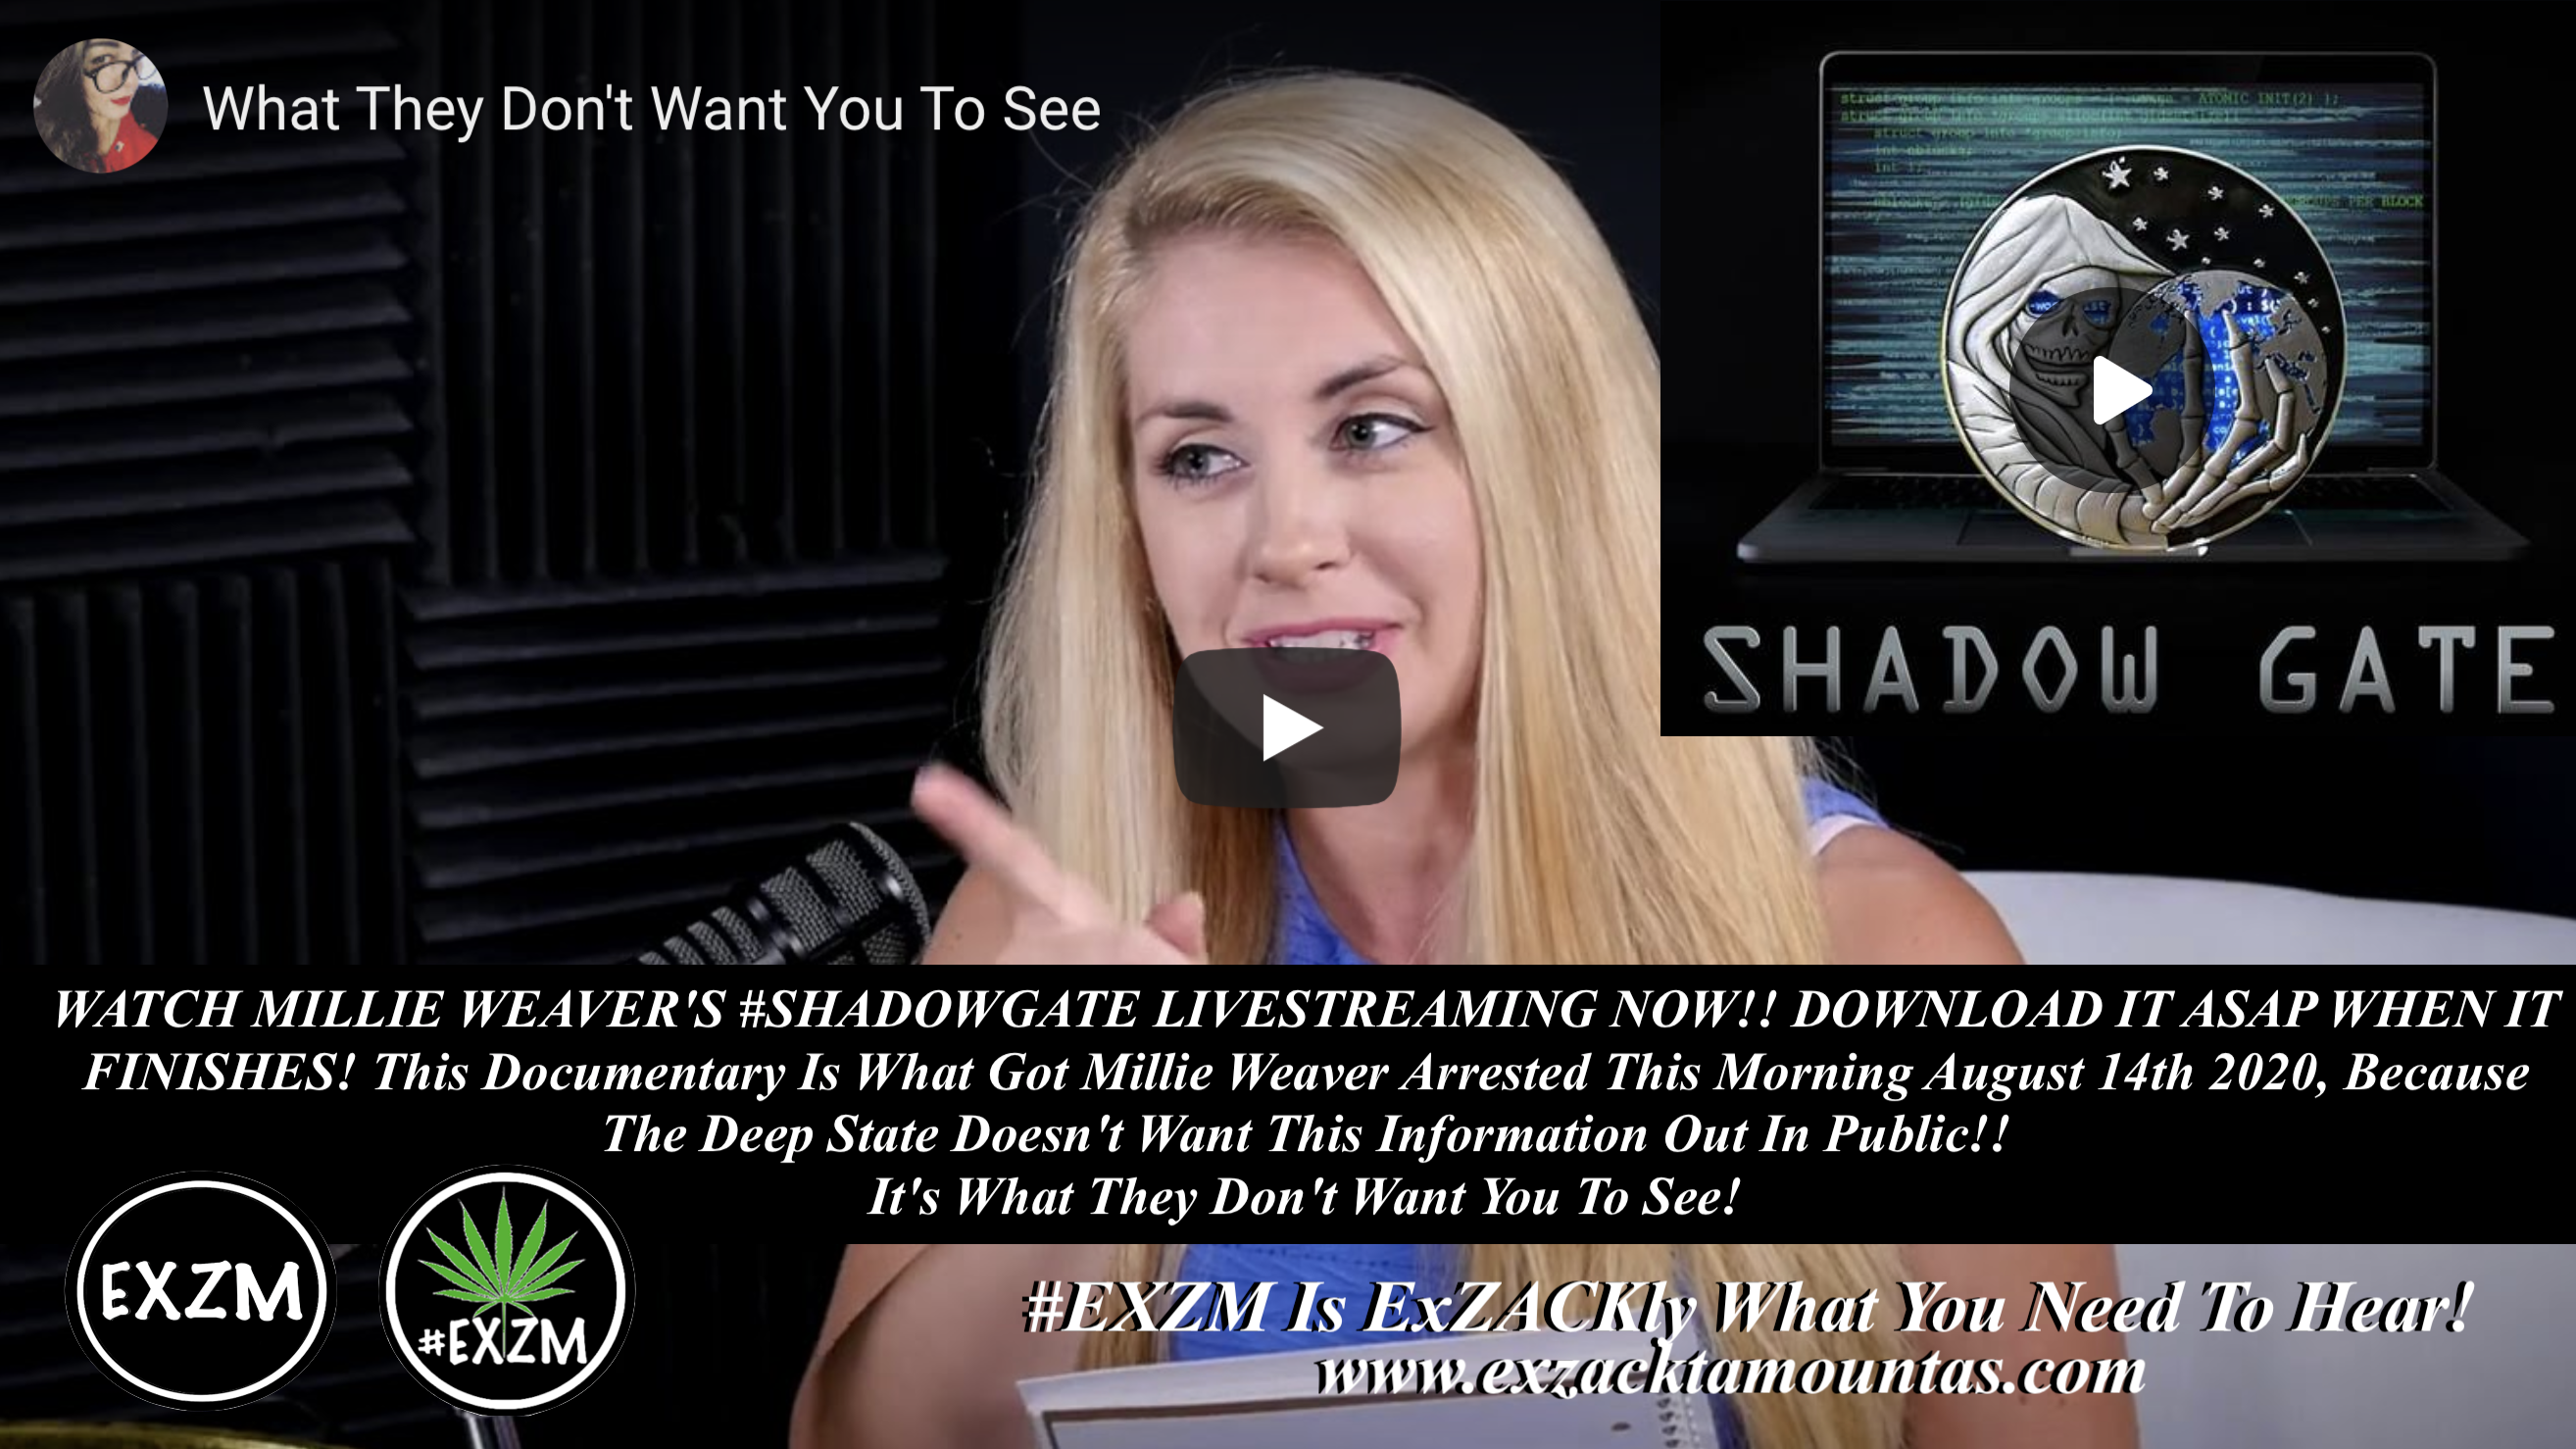 Millie Weaver ShadowGate Shadow Gate Deep State Tore Says Infowars EXZM August 14th 2020